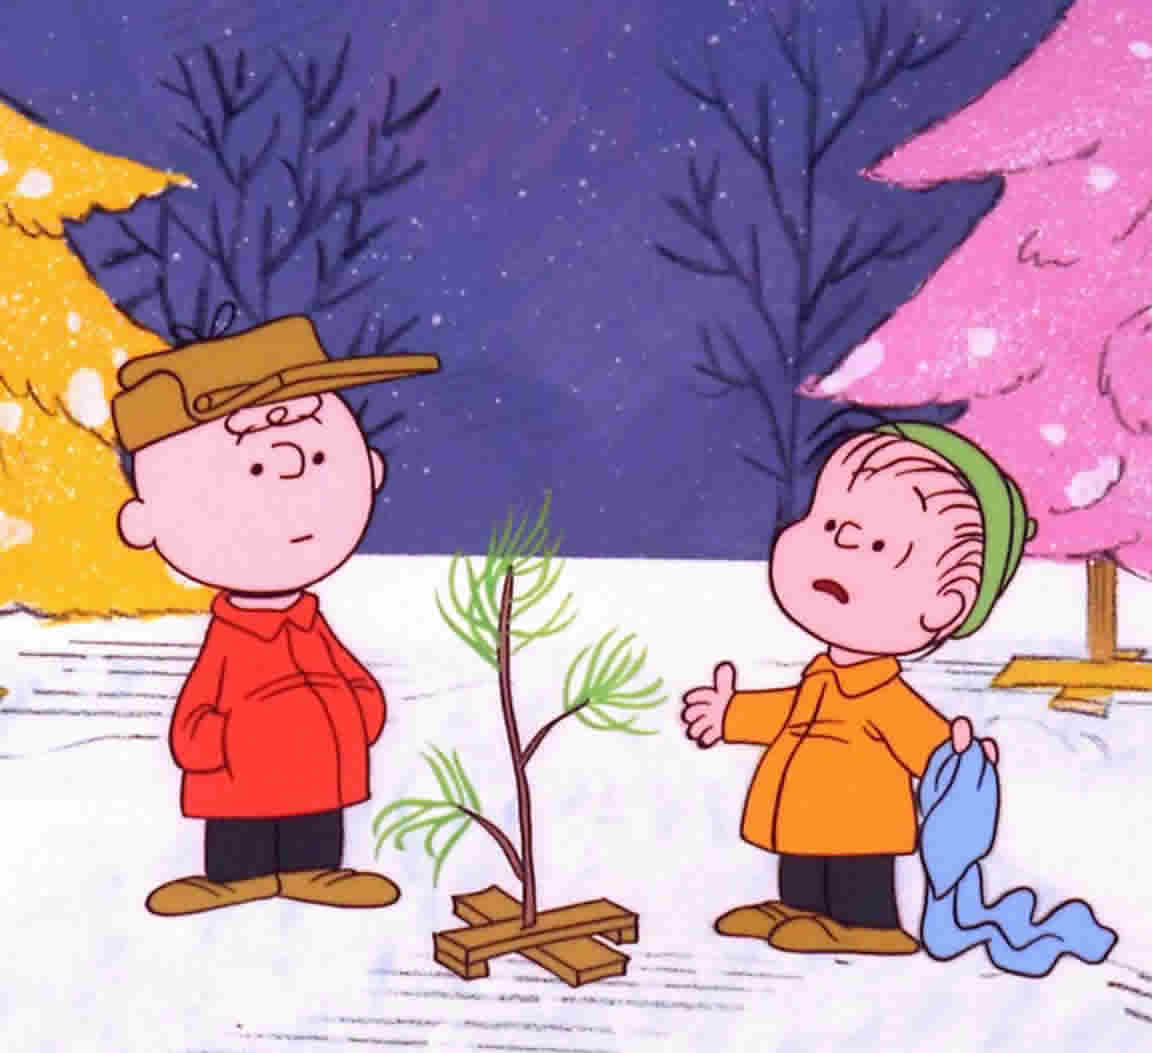 The fine art diner christian symbols in a charlie brown christmas what do the aluminum trees symbolize the unnatural specifically hearts that are hardened and unnatural the heart that puts on christmas joy and cheer biocorpaavc Images